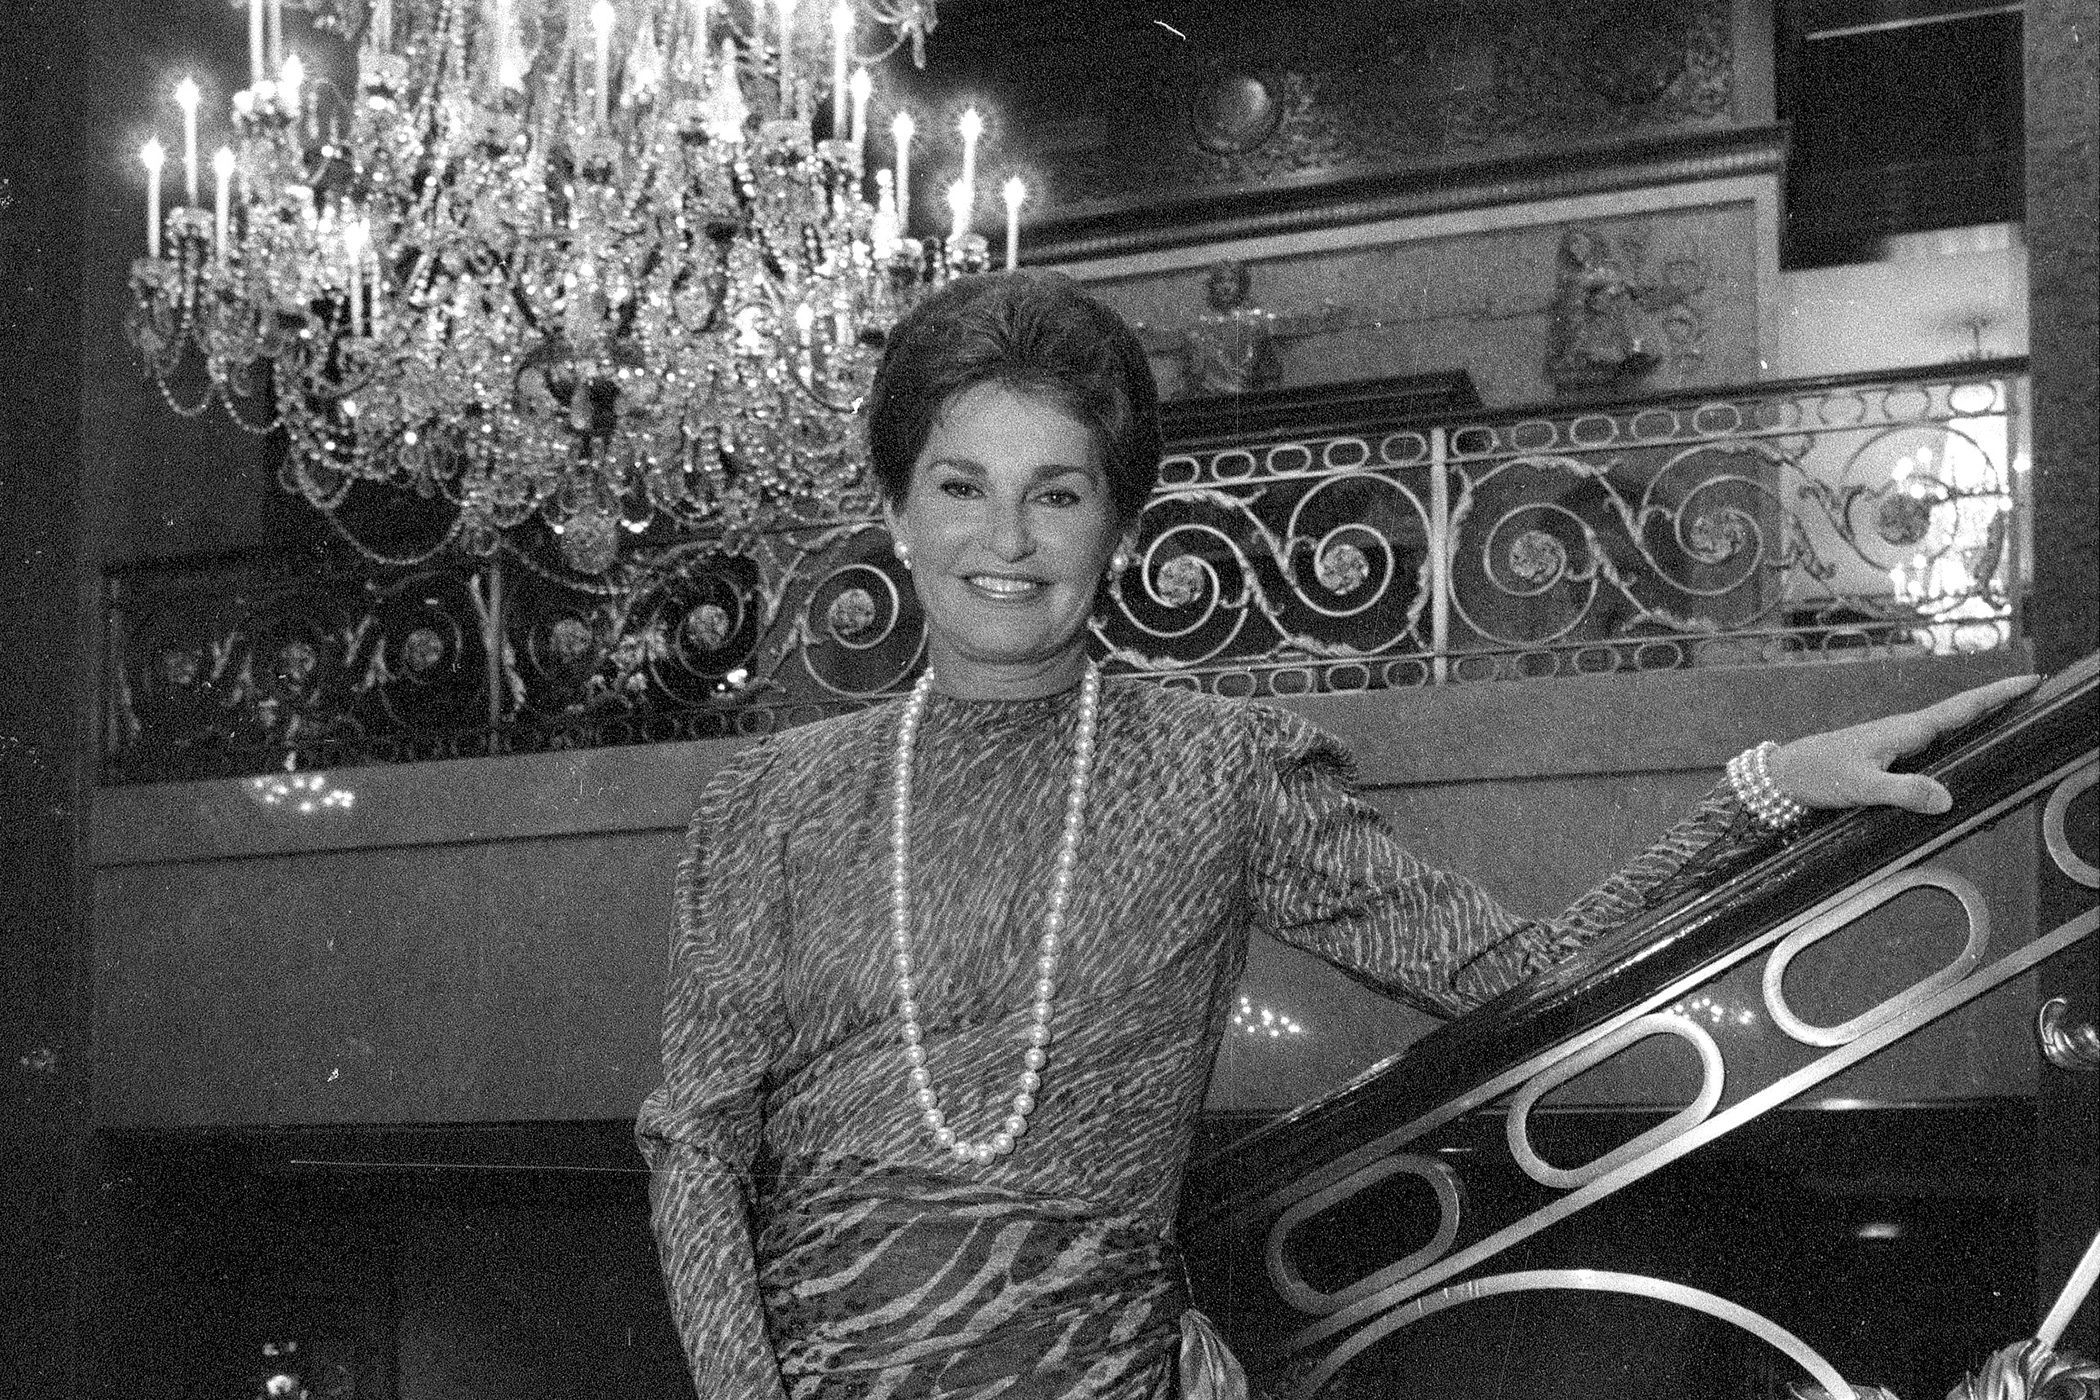 Leona Helmsley in The Helmsley palace, 50th Street and Madison Avenue, 2002.